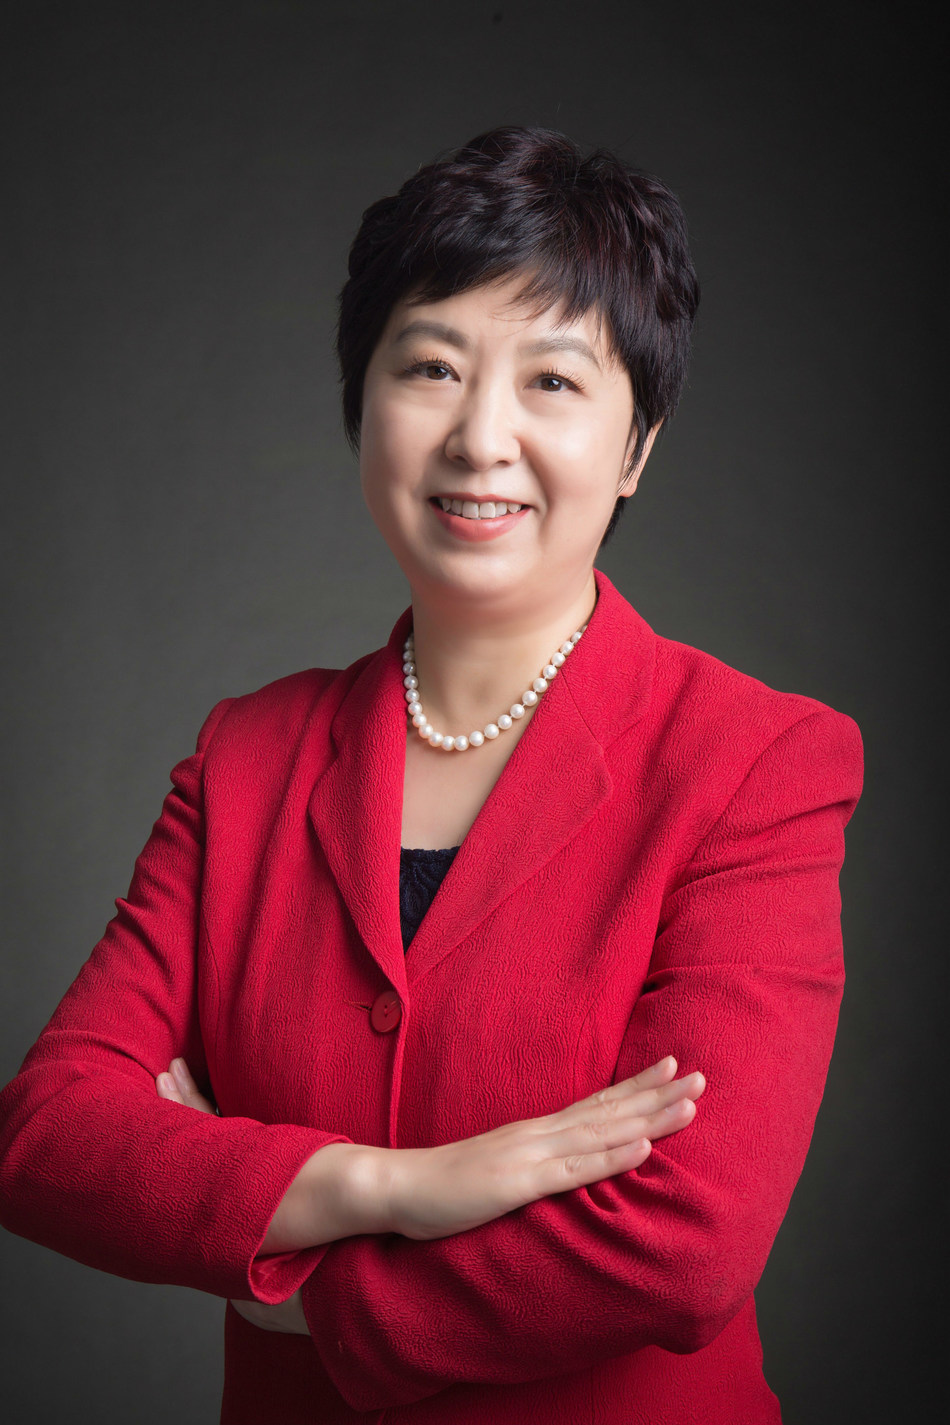 Professor Jean Chen - Dean of International Business School Suzhou (IBSS) at Xi'an Jiaotong-Liverpool University in China leading IBSS to global recognition.